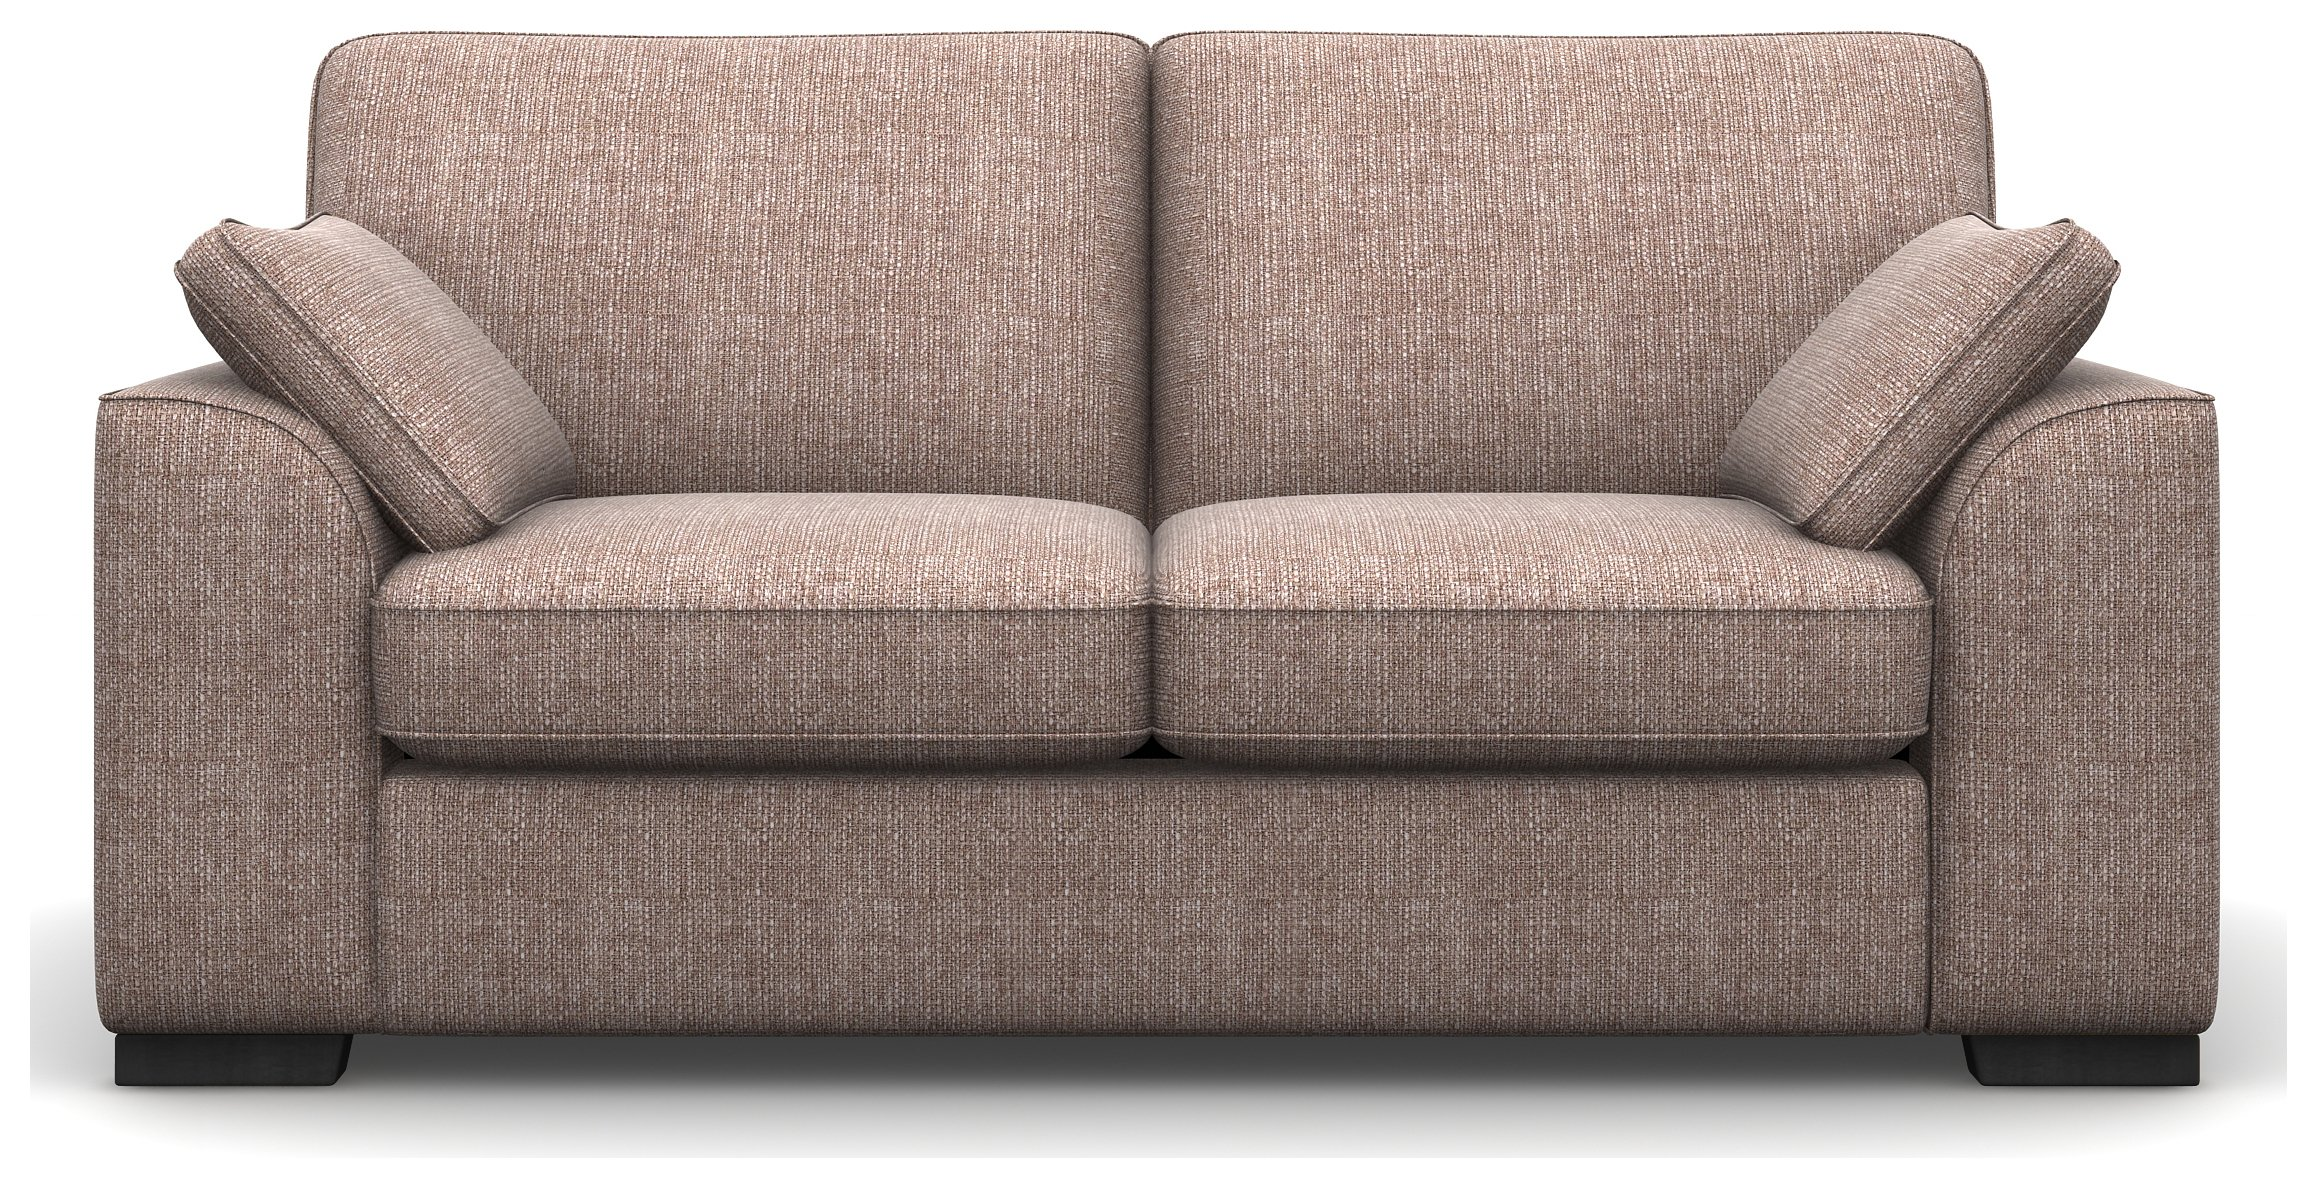 Heart of House Lincoln 2 Seater Fabric Sofa - Natural + Black Legs